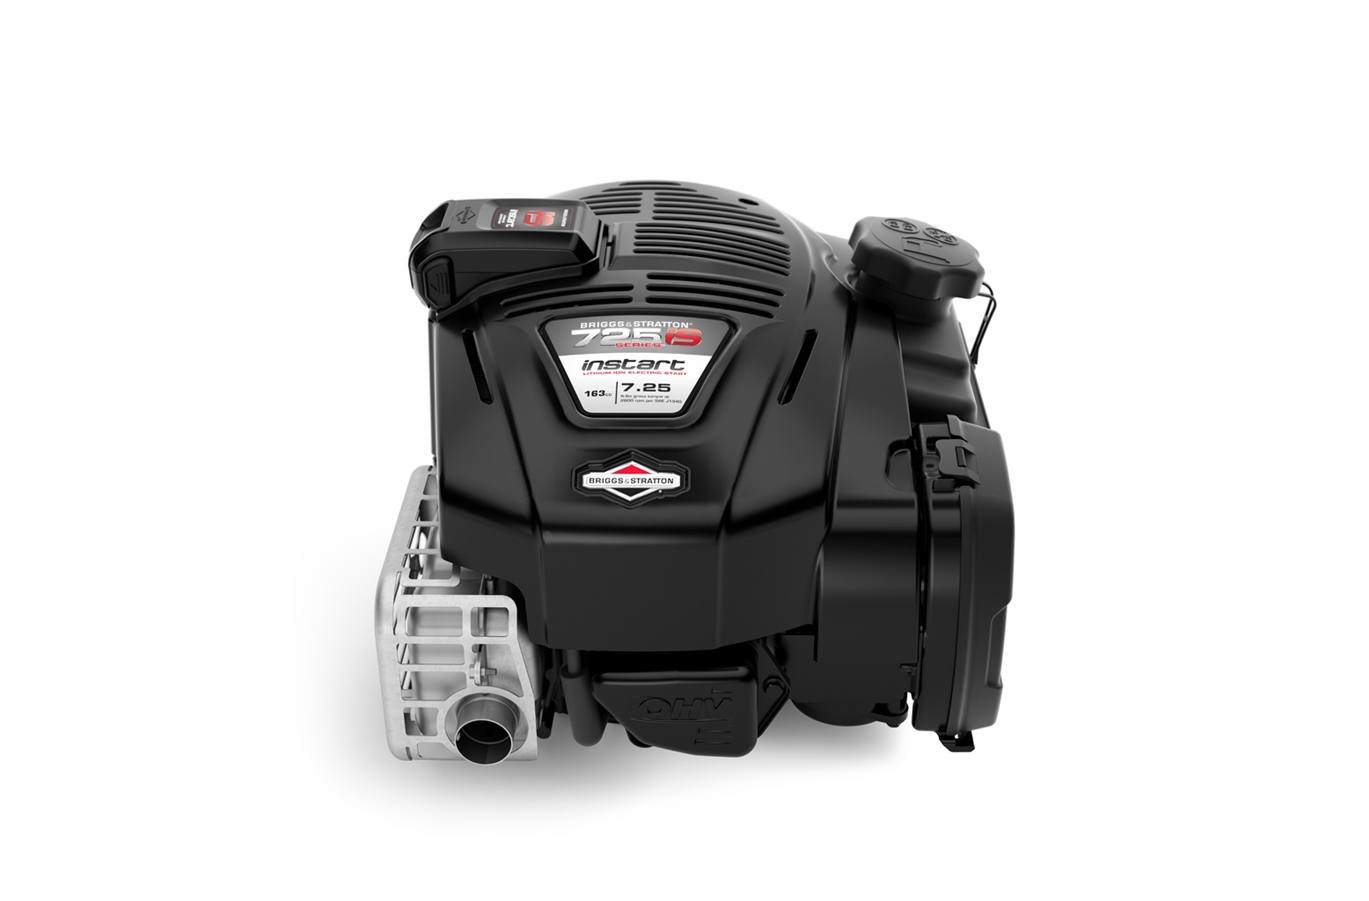 2019 Briggs & Stratton InStart® Series Engine 8 50 ft-lbs Gross